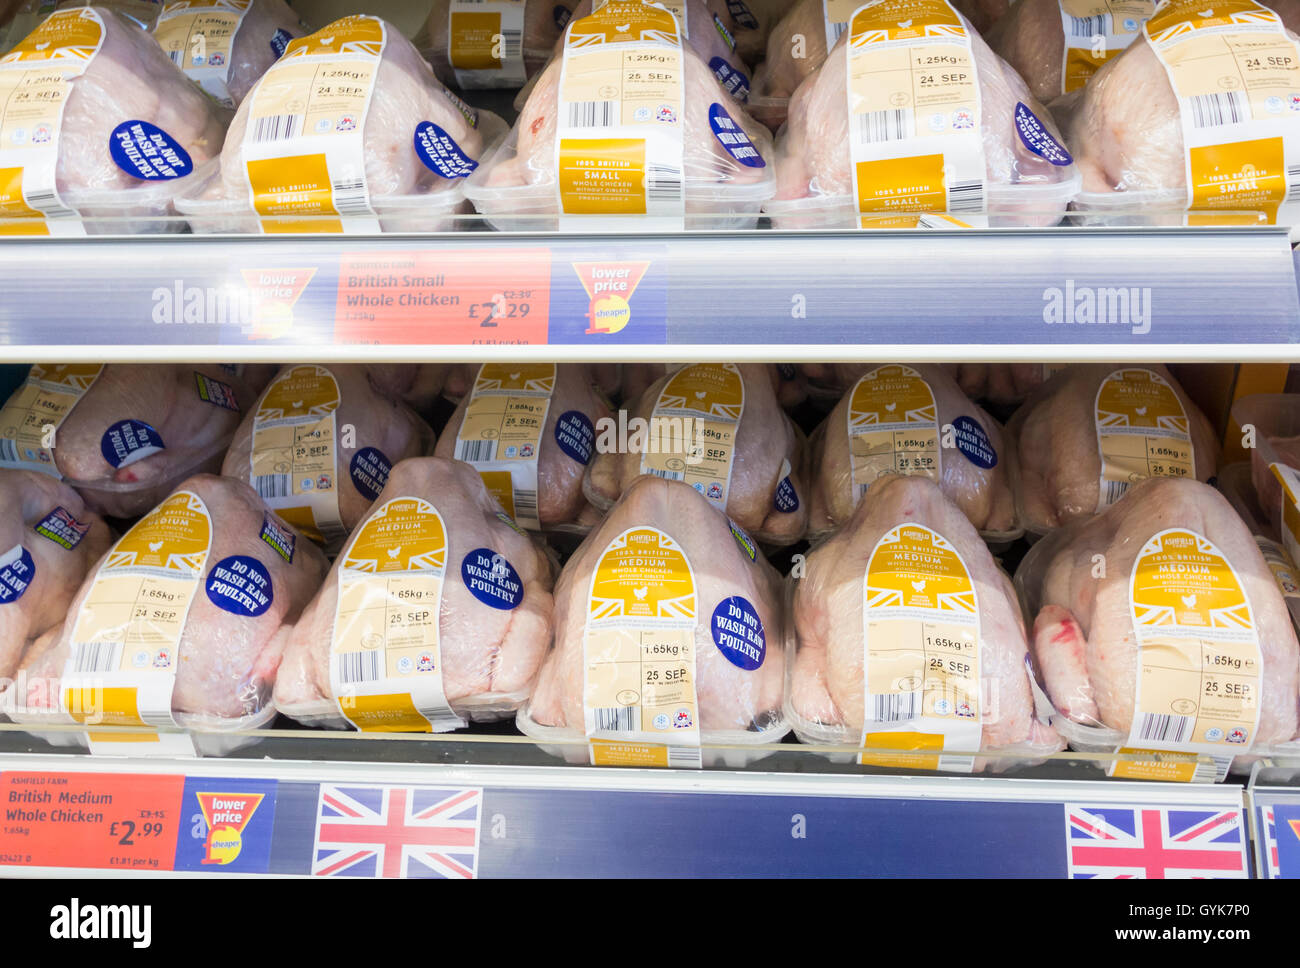 Fresh chickens with do not wash raw poultry stickers in Aldi supermarket. UK - Stock Image